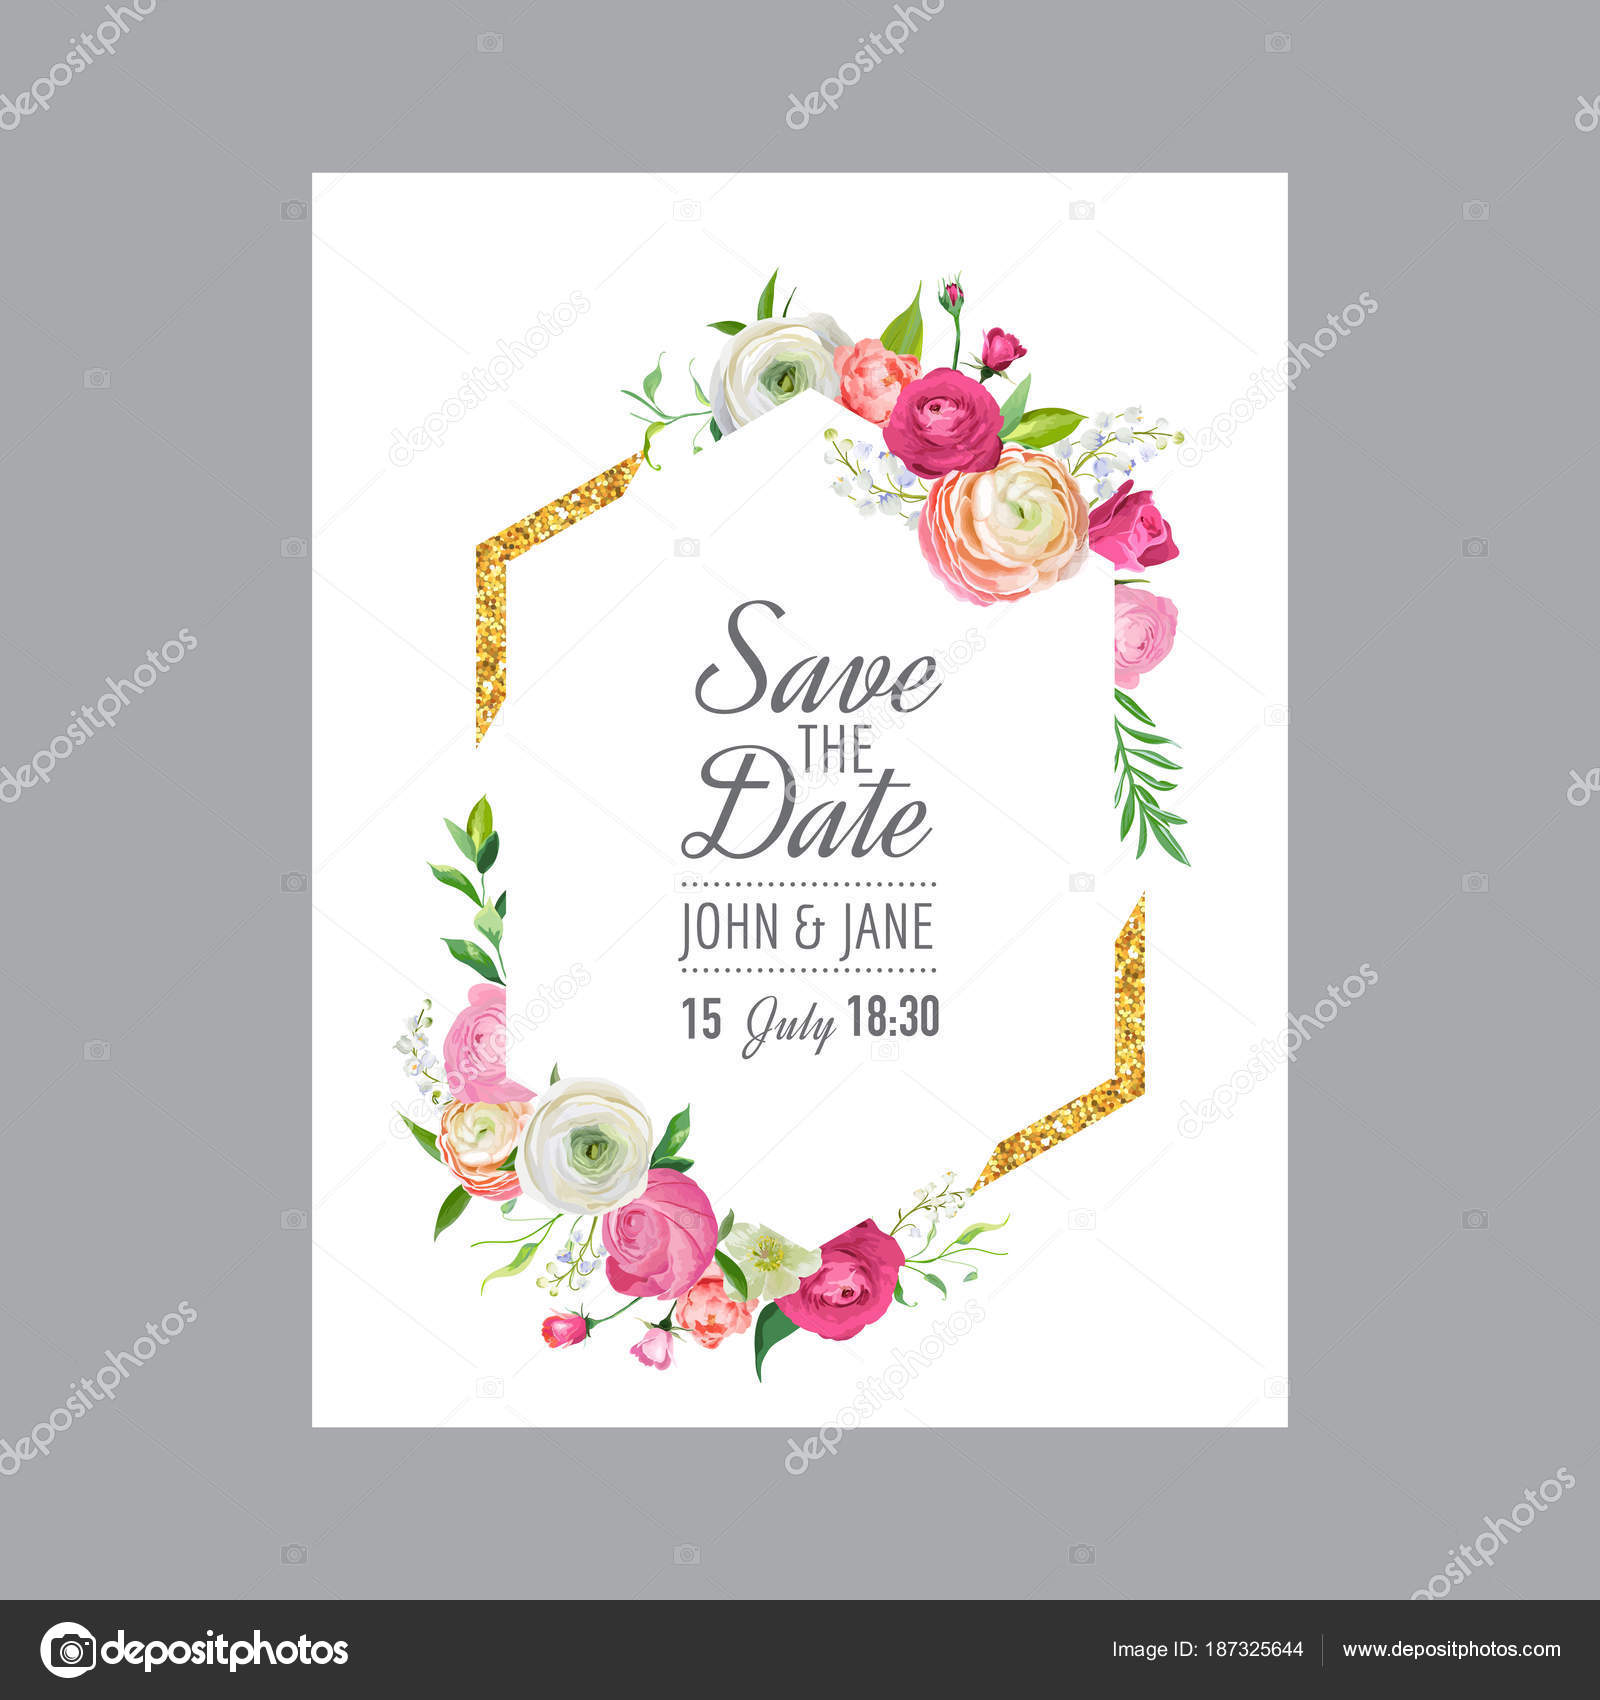 save the date card template with gold glitter frame and pink flowers wedding invitation